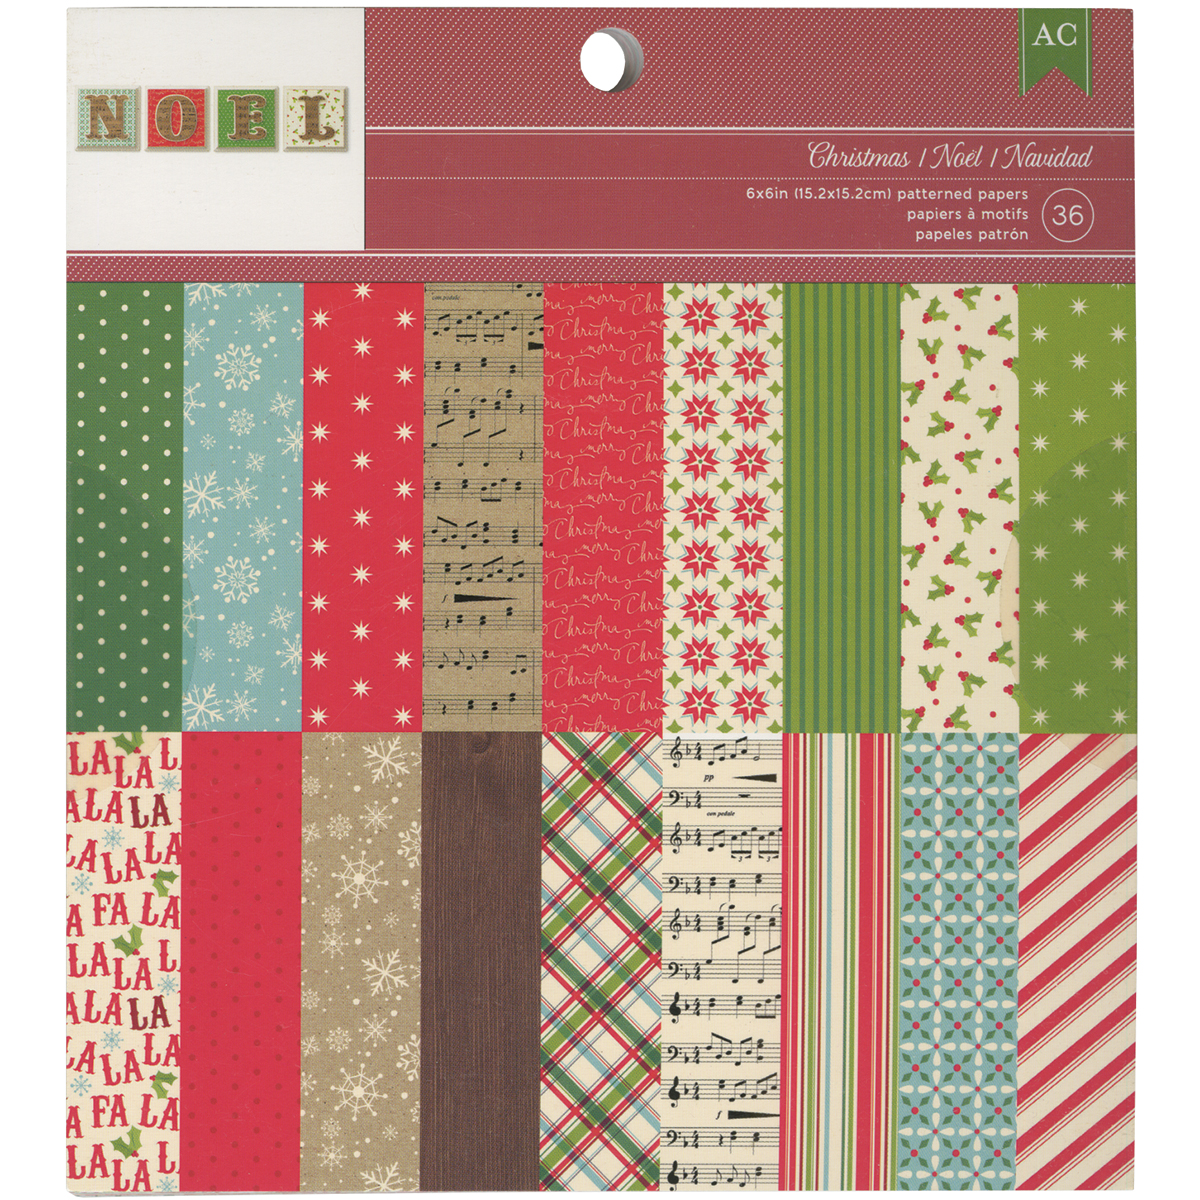 American Crafts 97198 American Crafts Paper Pad 6x6 36/Pkg -Christmas